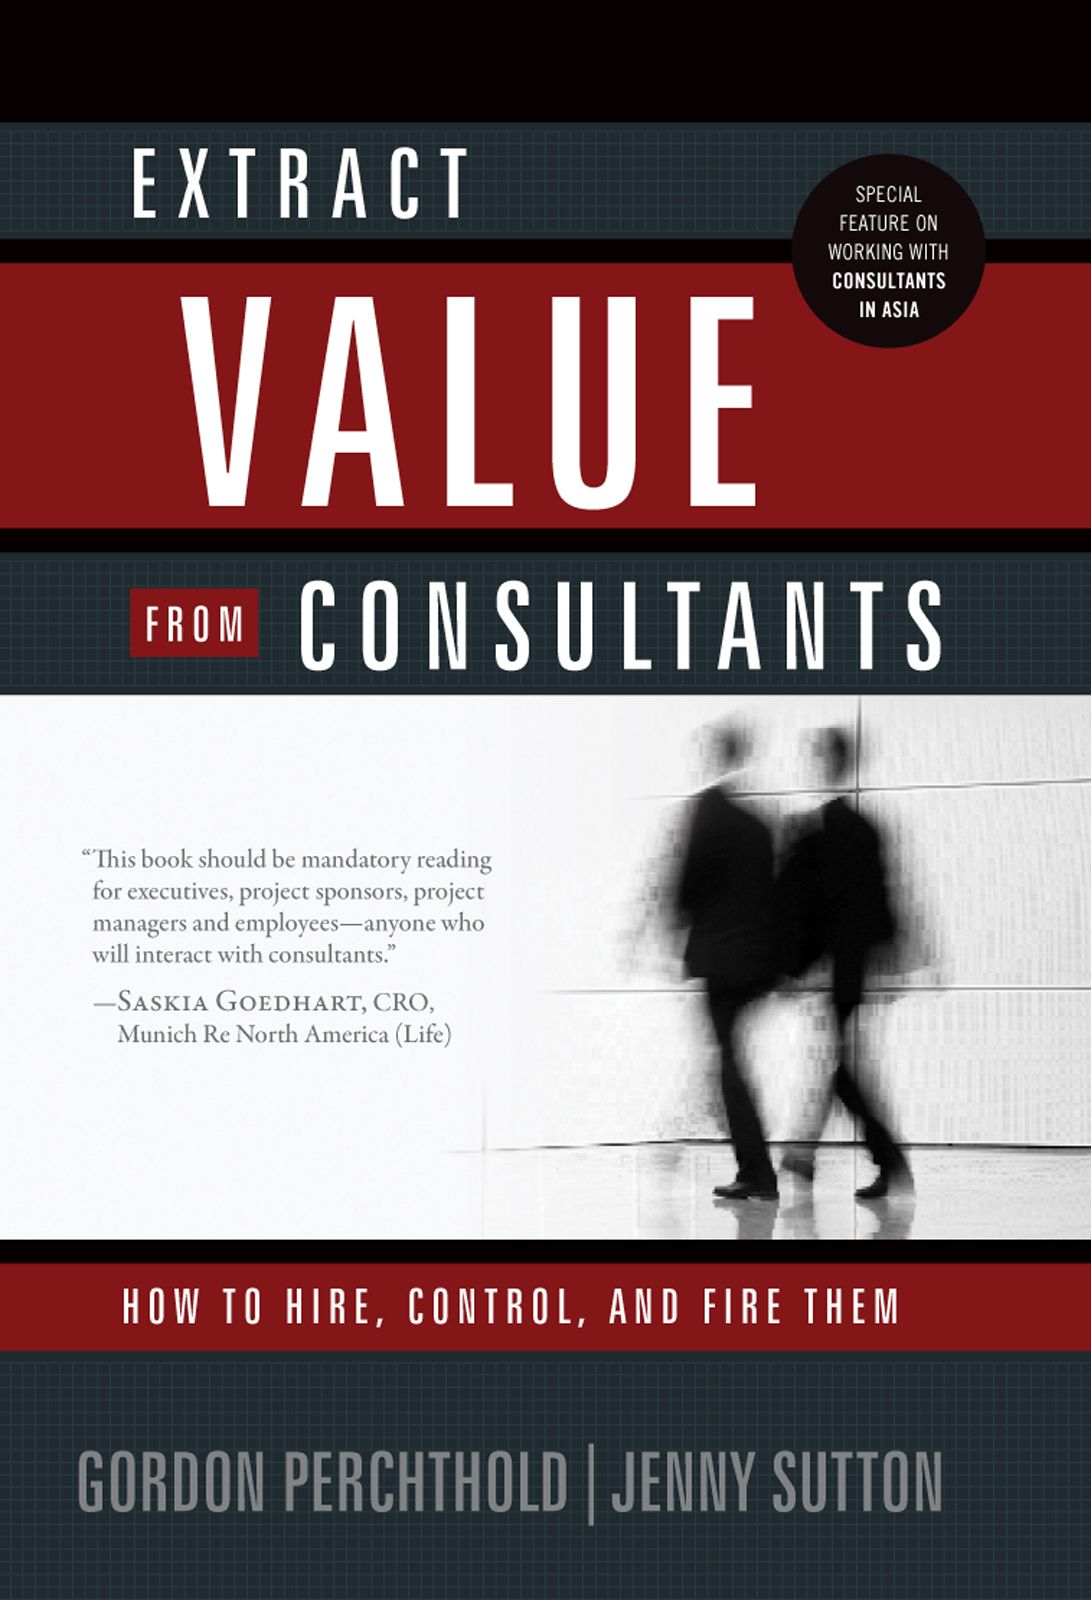 Extract Value From Consultants: How To Hire, Control, And Fire Them